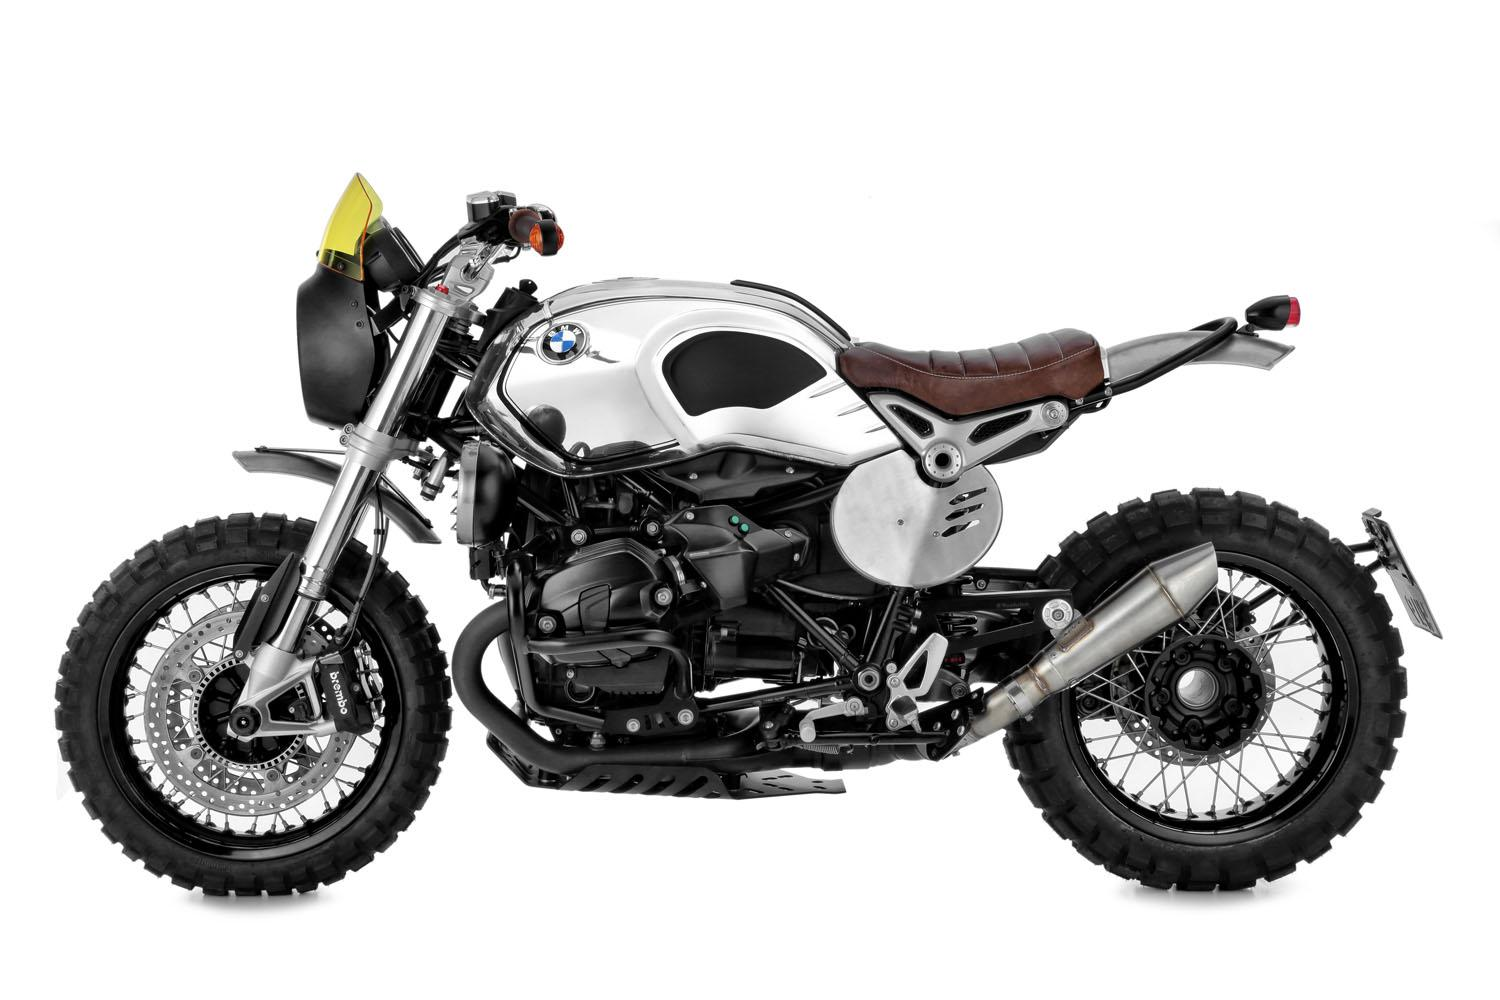 wunderlich r ninet scrambler motorrad fotos motorrad bilder. Black Bedroom Furniture Sets. Home Design Ideas